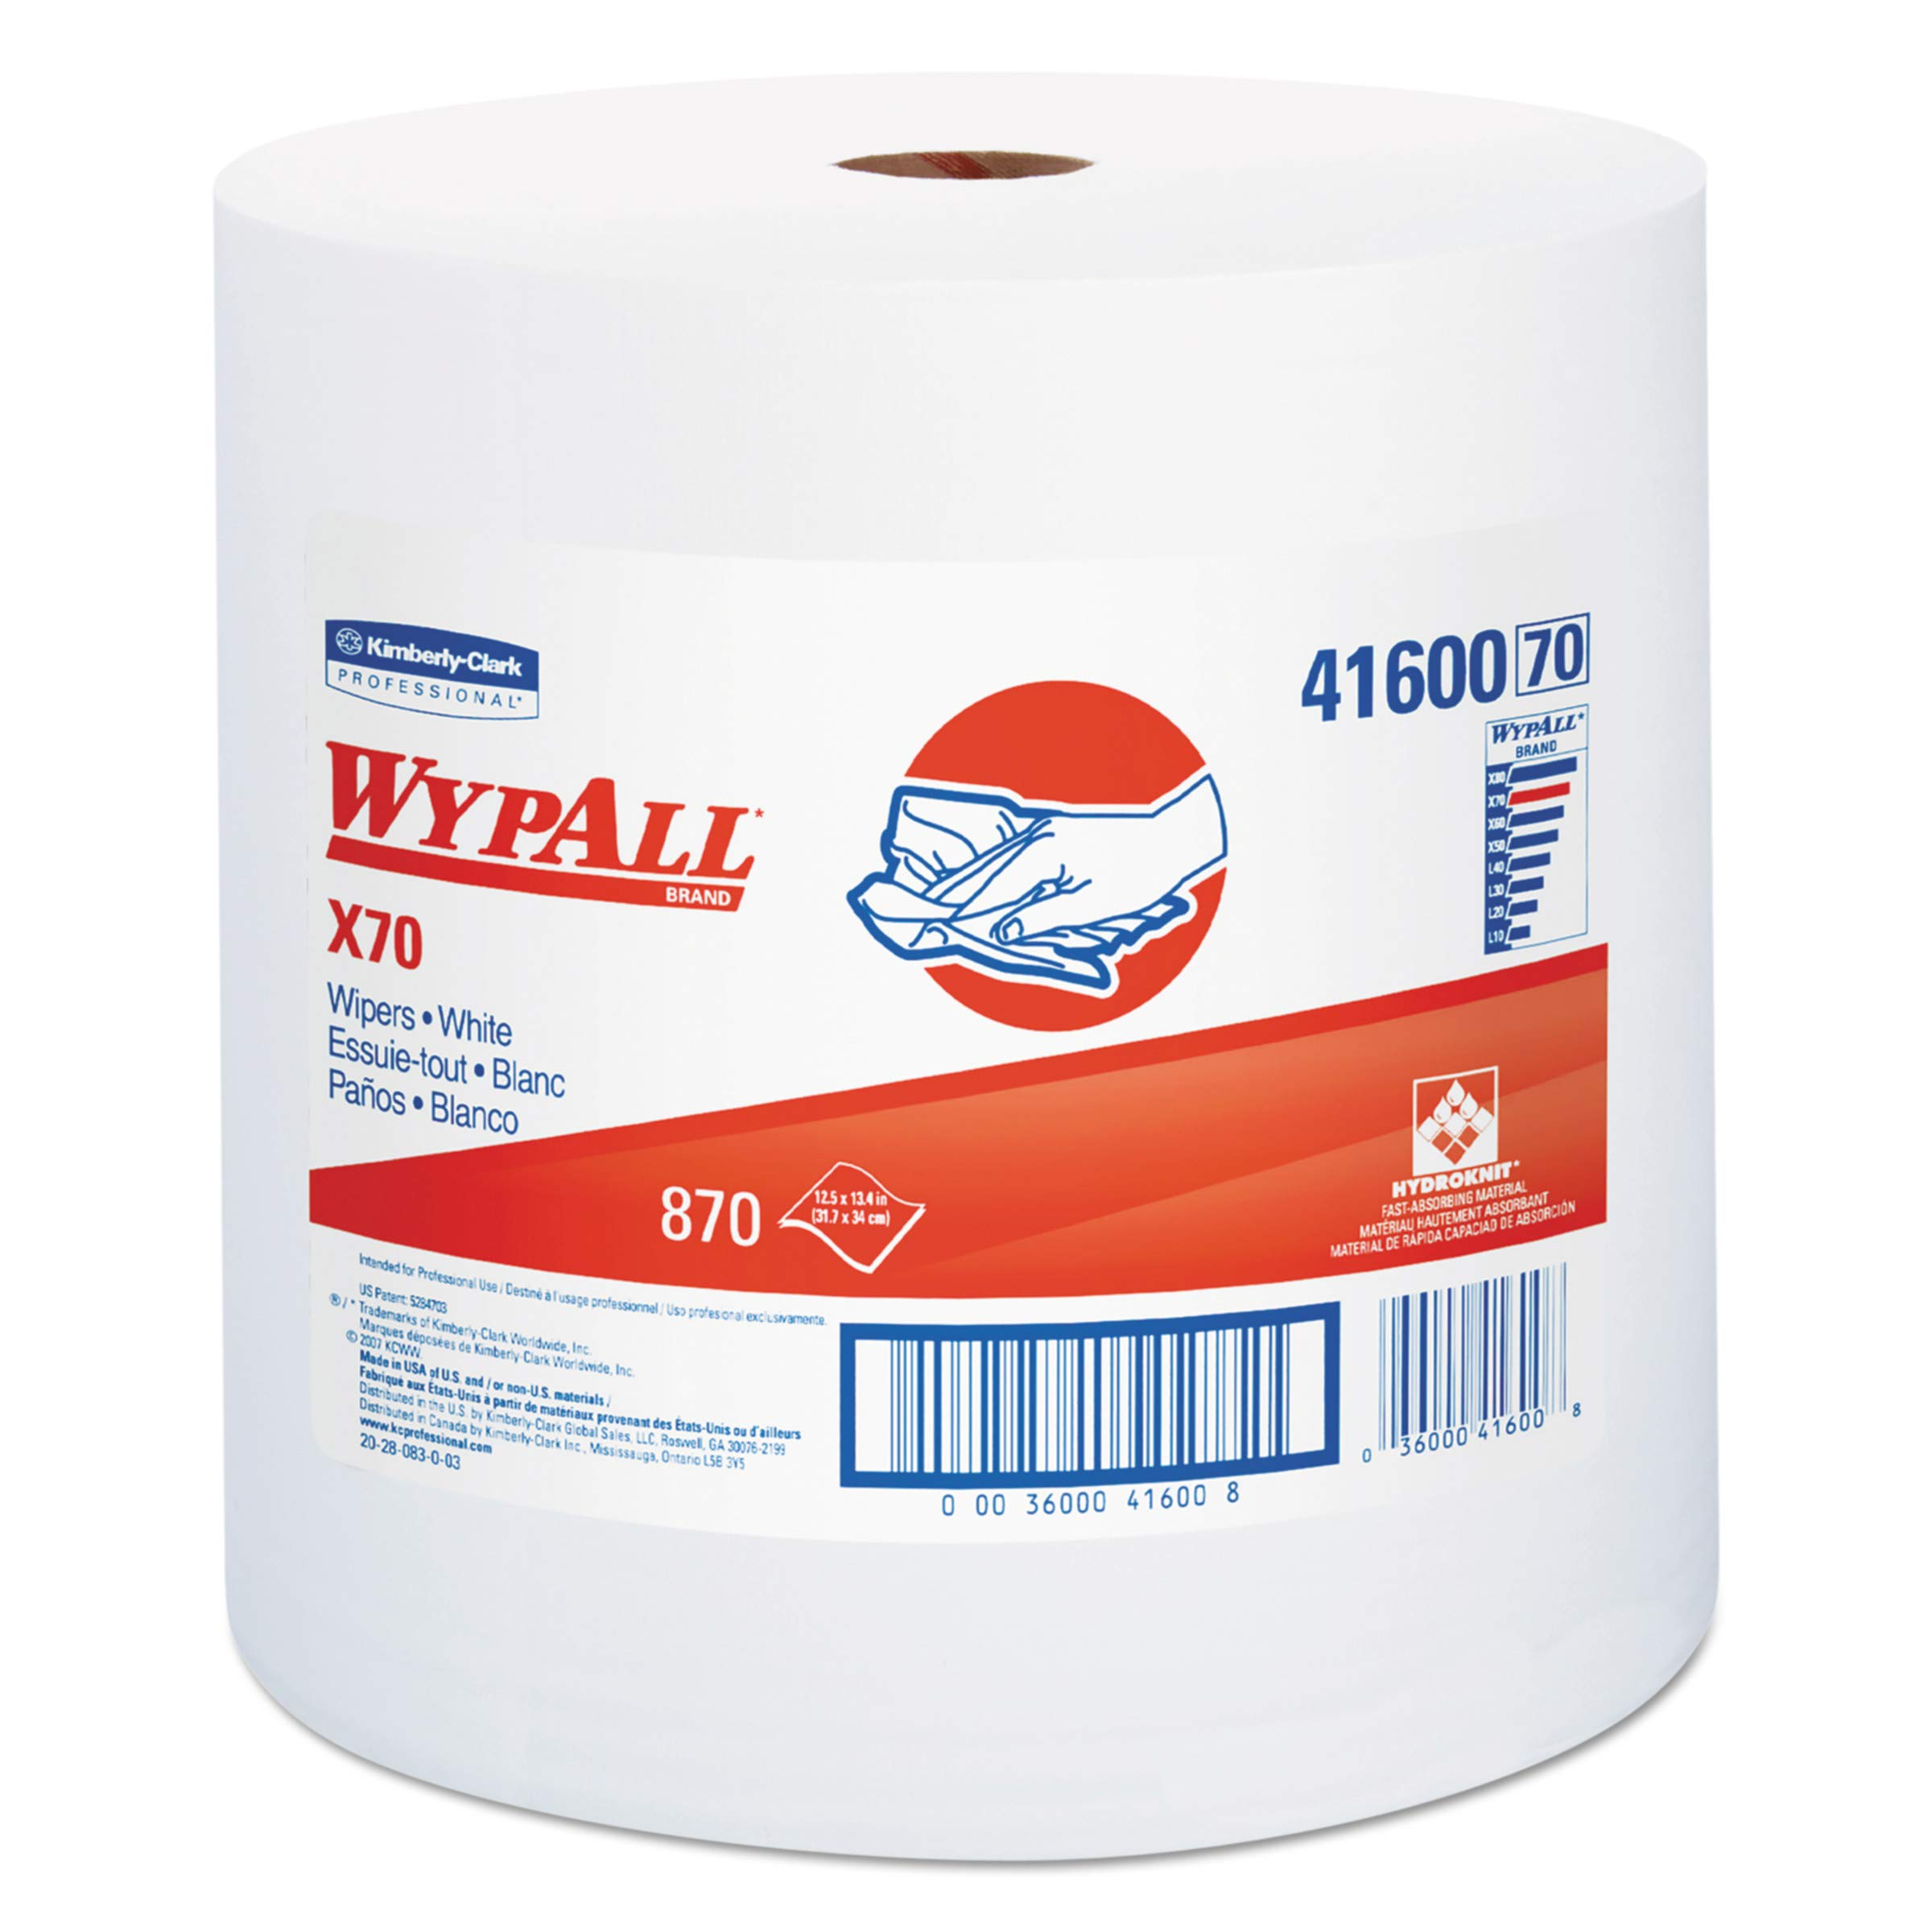 WypAll 41600 X70 Cloths, Jumbo Roll, Perf., 12 1/2 x 13 2/5, White, 870 Towels/Roll by Wypall